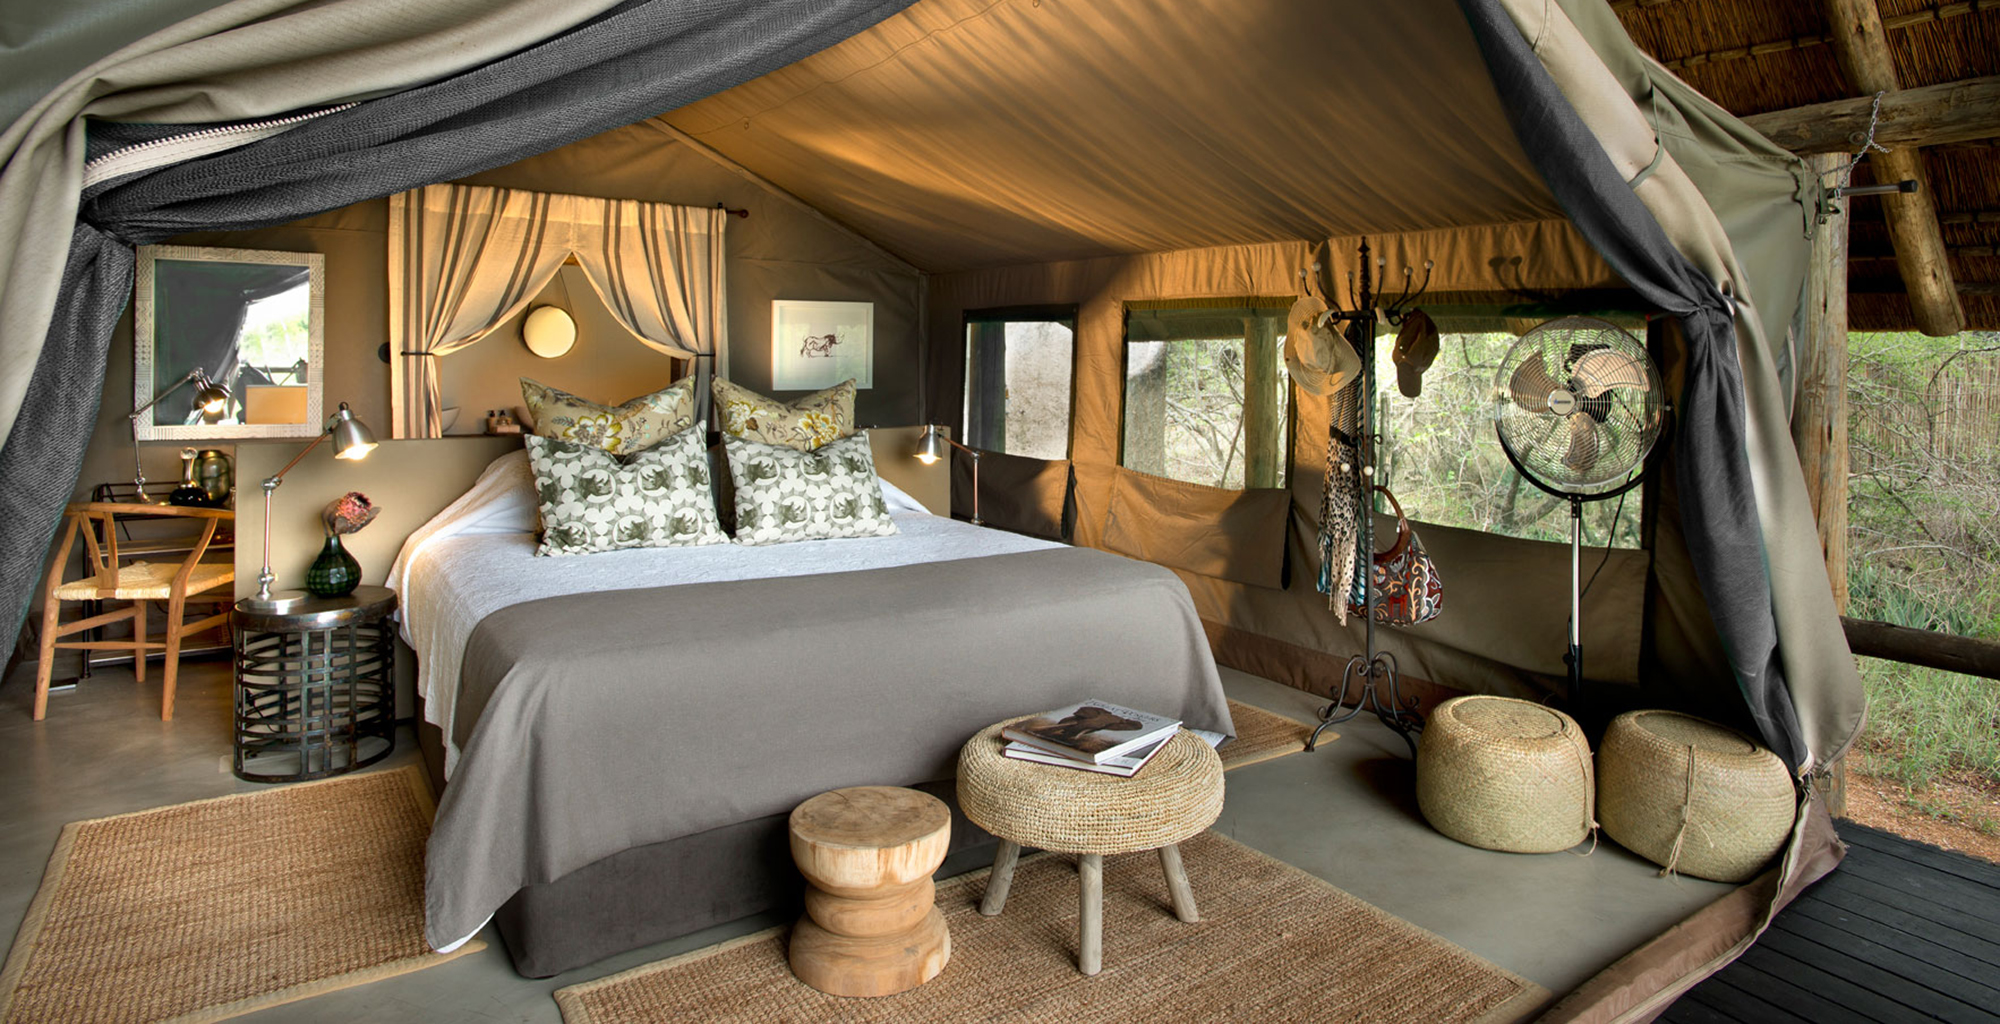 South-Africa-Tanda-Talu-Bedroom